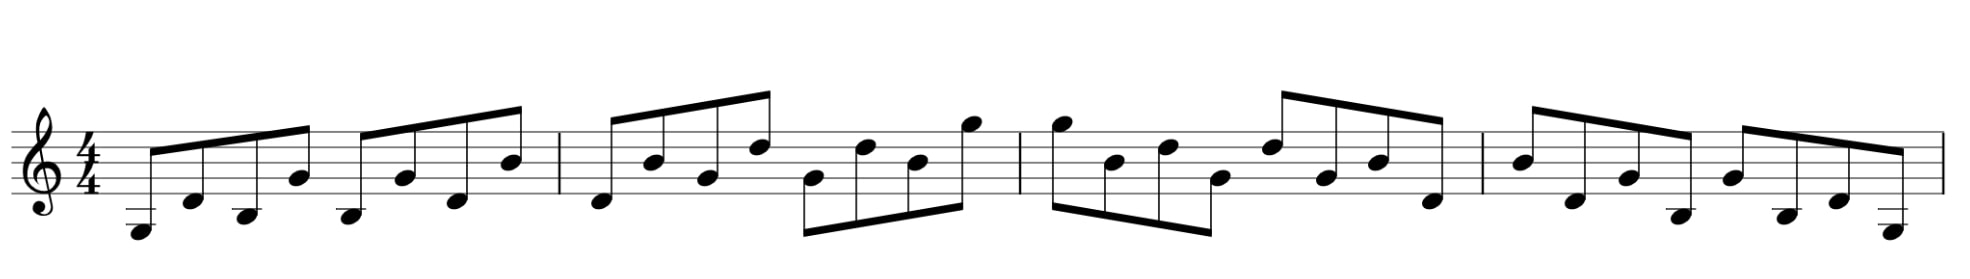 G major broken chord alternative pattern